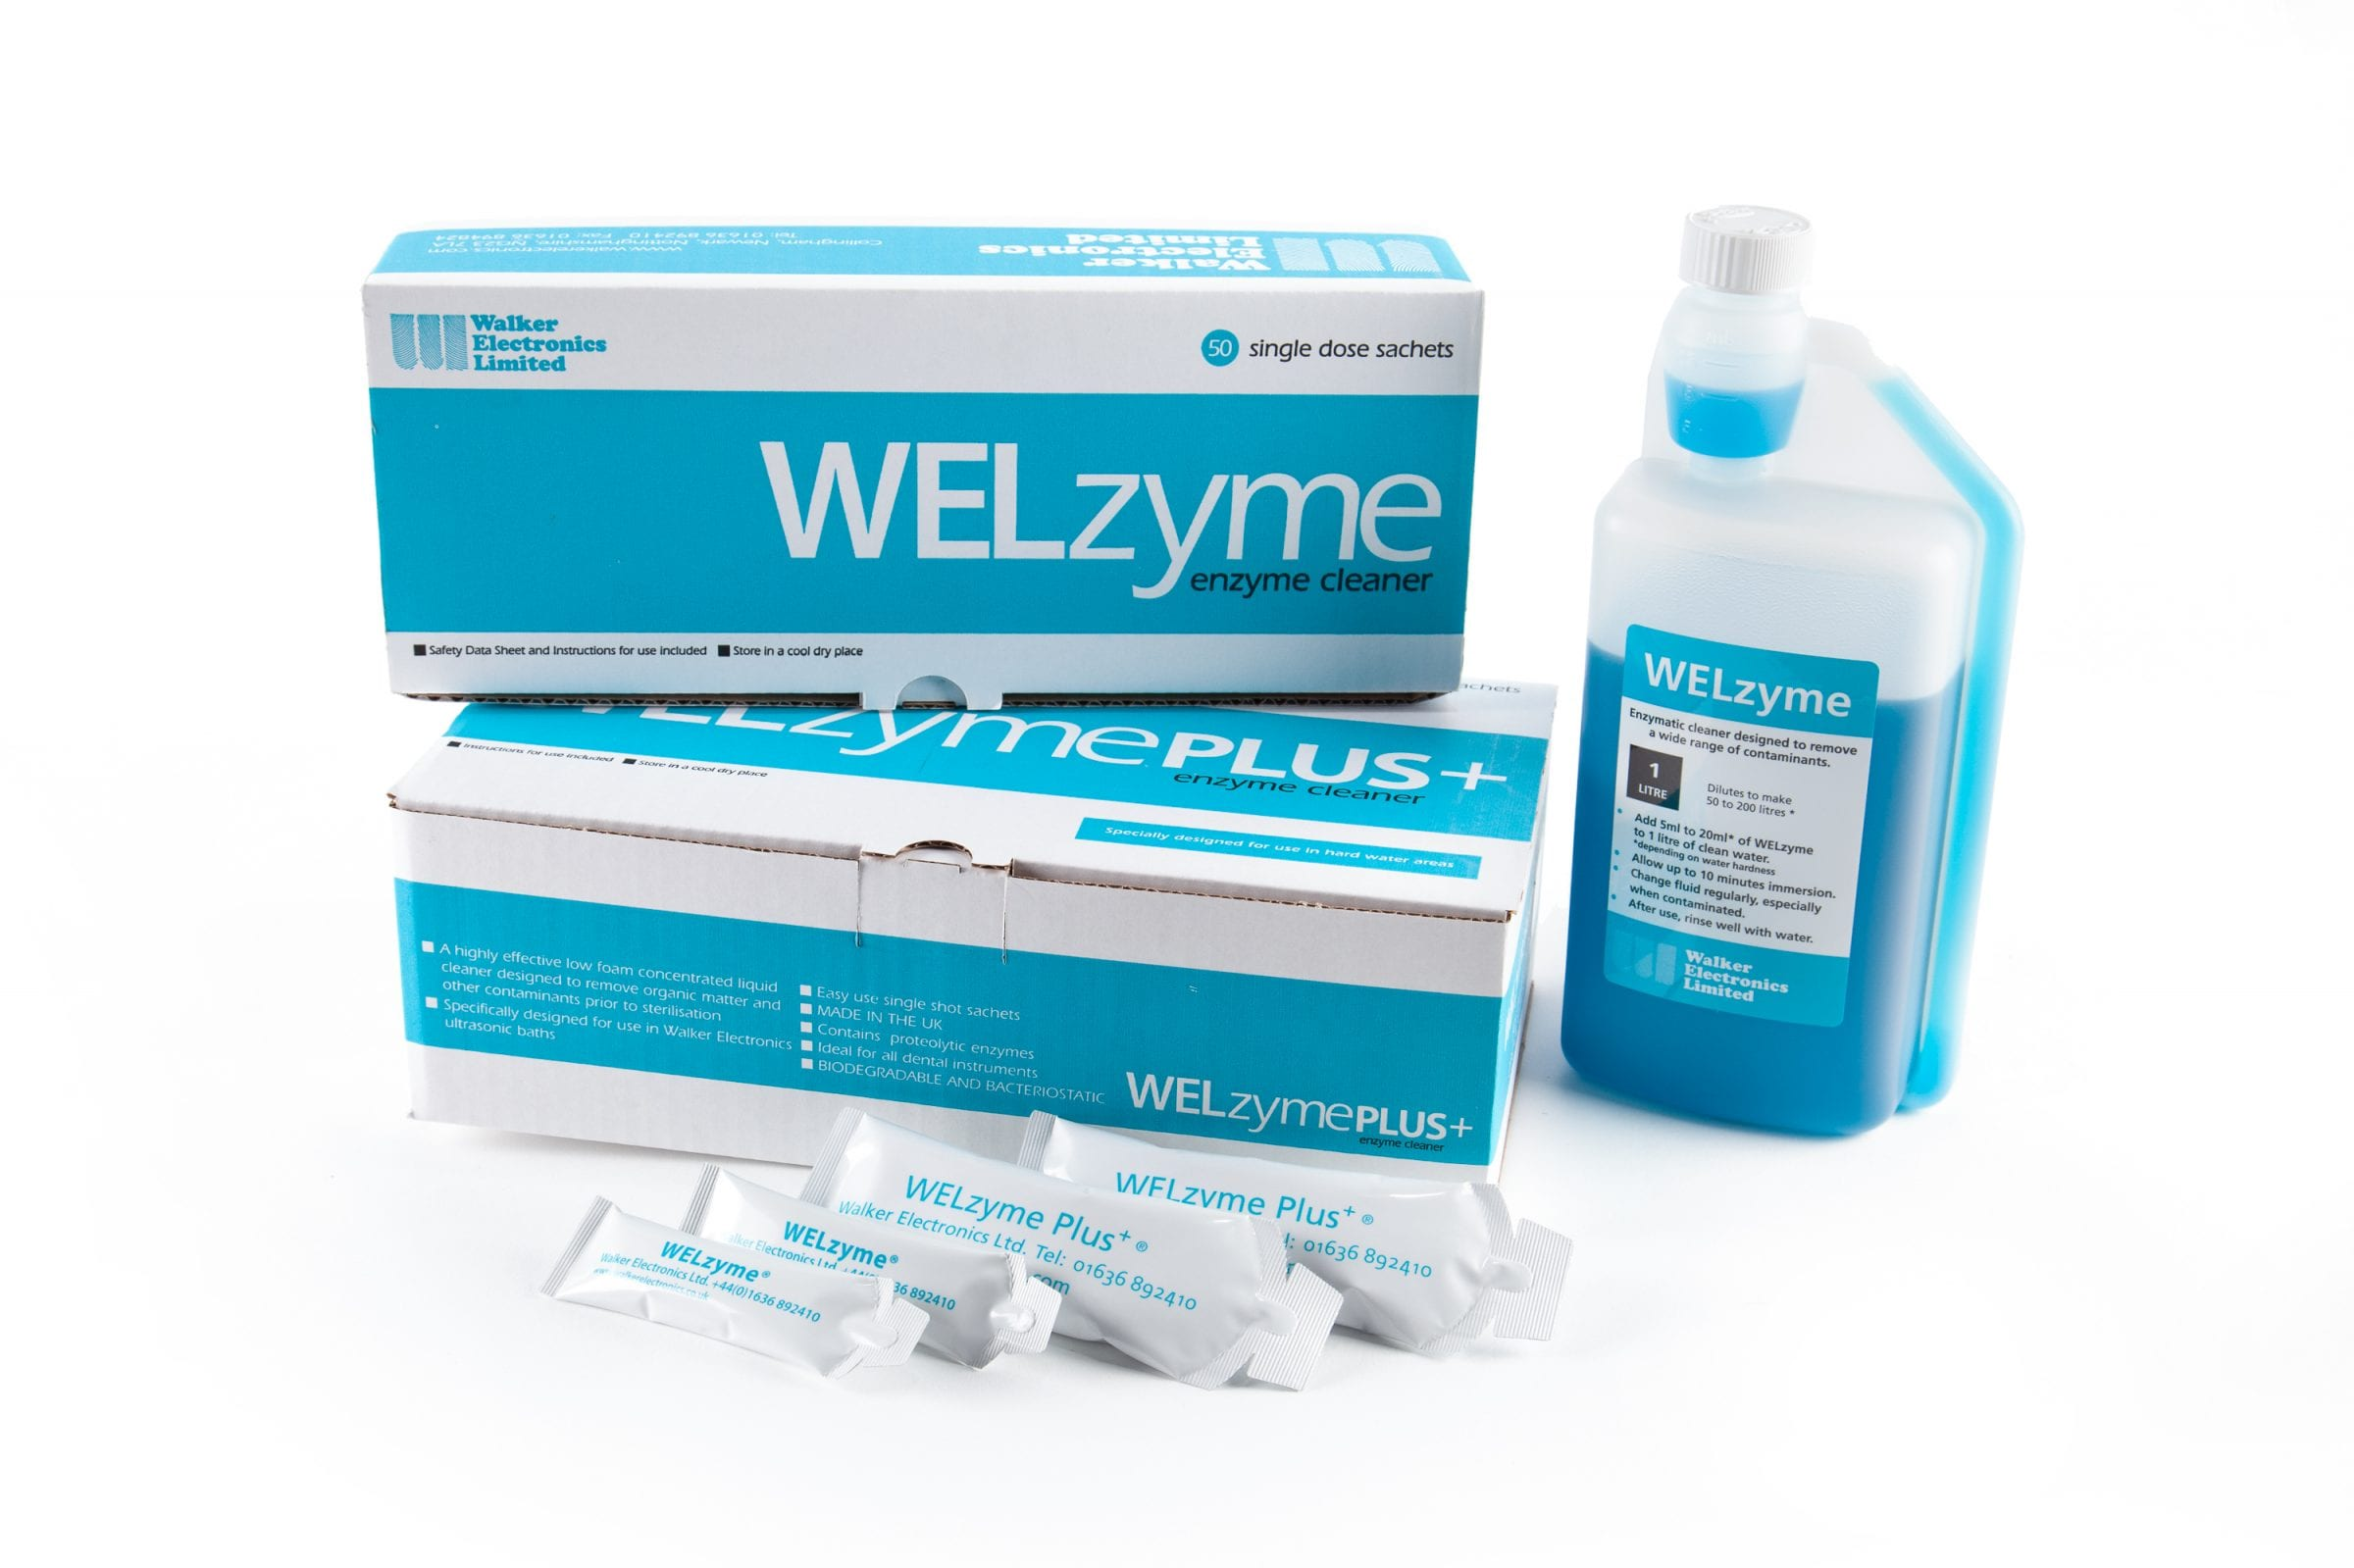 WELZyme from Walker Electronics